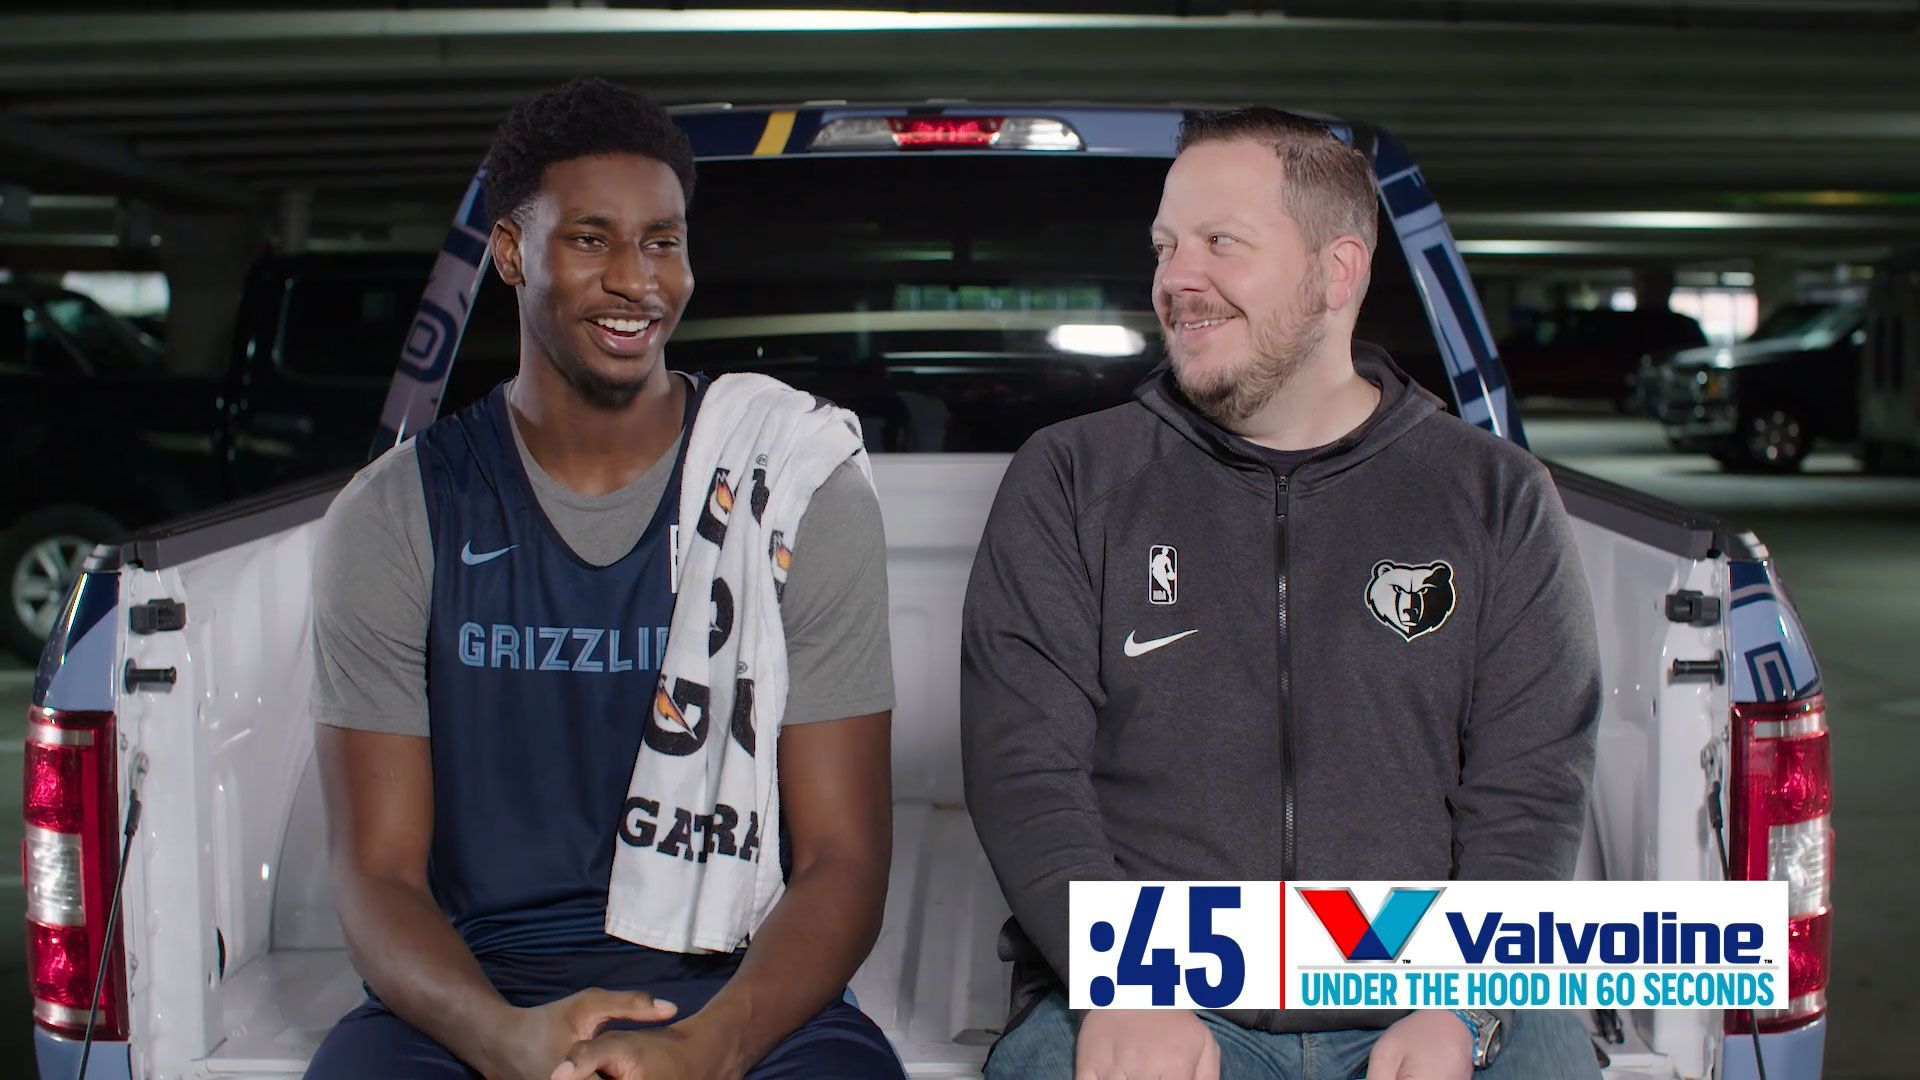 Valvoline: Under the Hood in 60 Seconds with Jaren Jackson Jr.